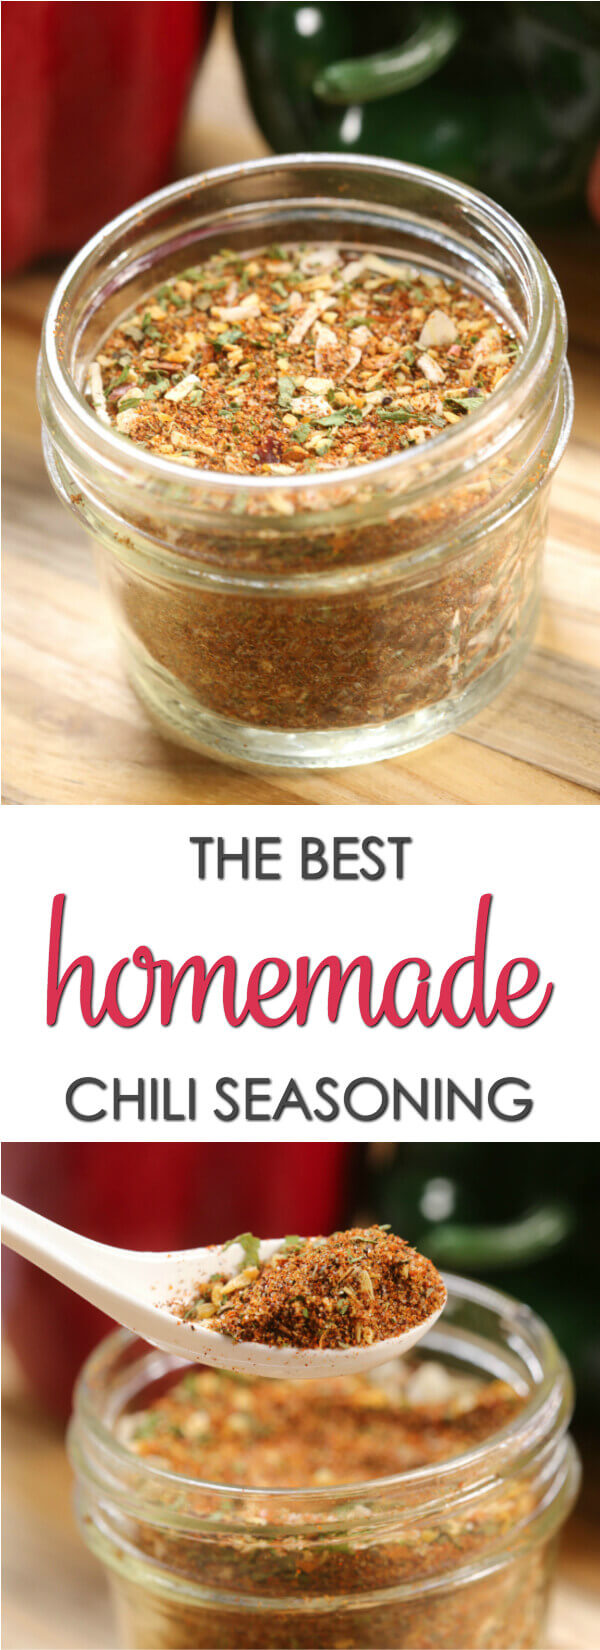 This homemade Chili Seasoning Mix recipe has just the right amount of heat and sweetness.